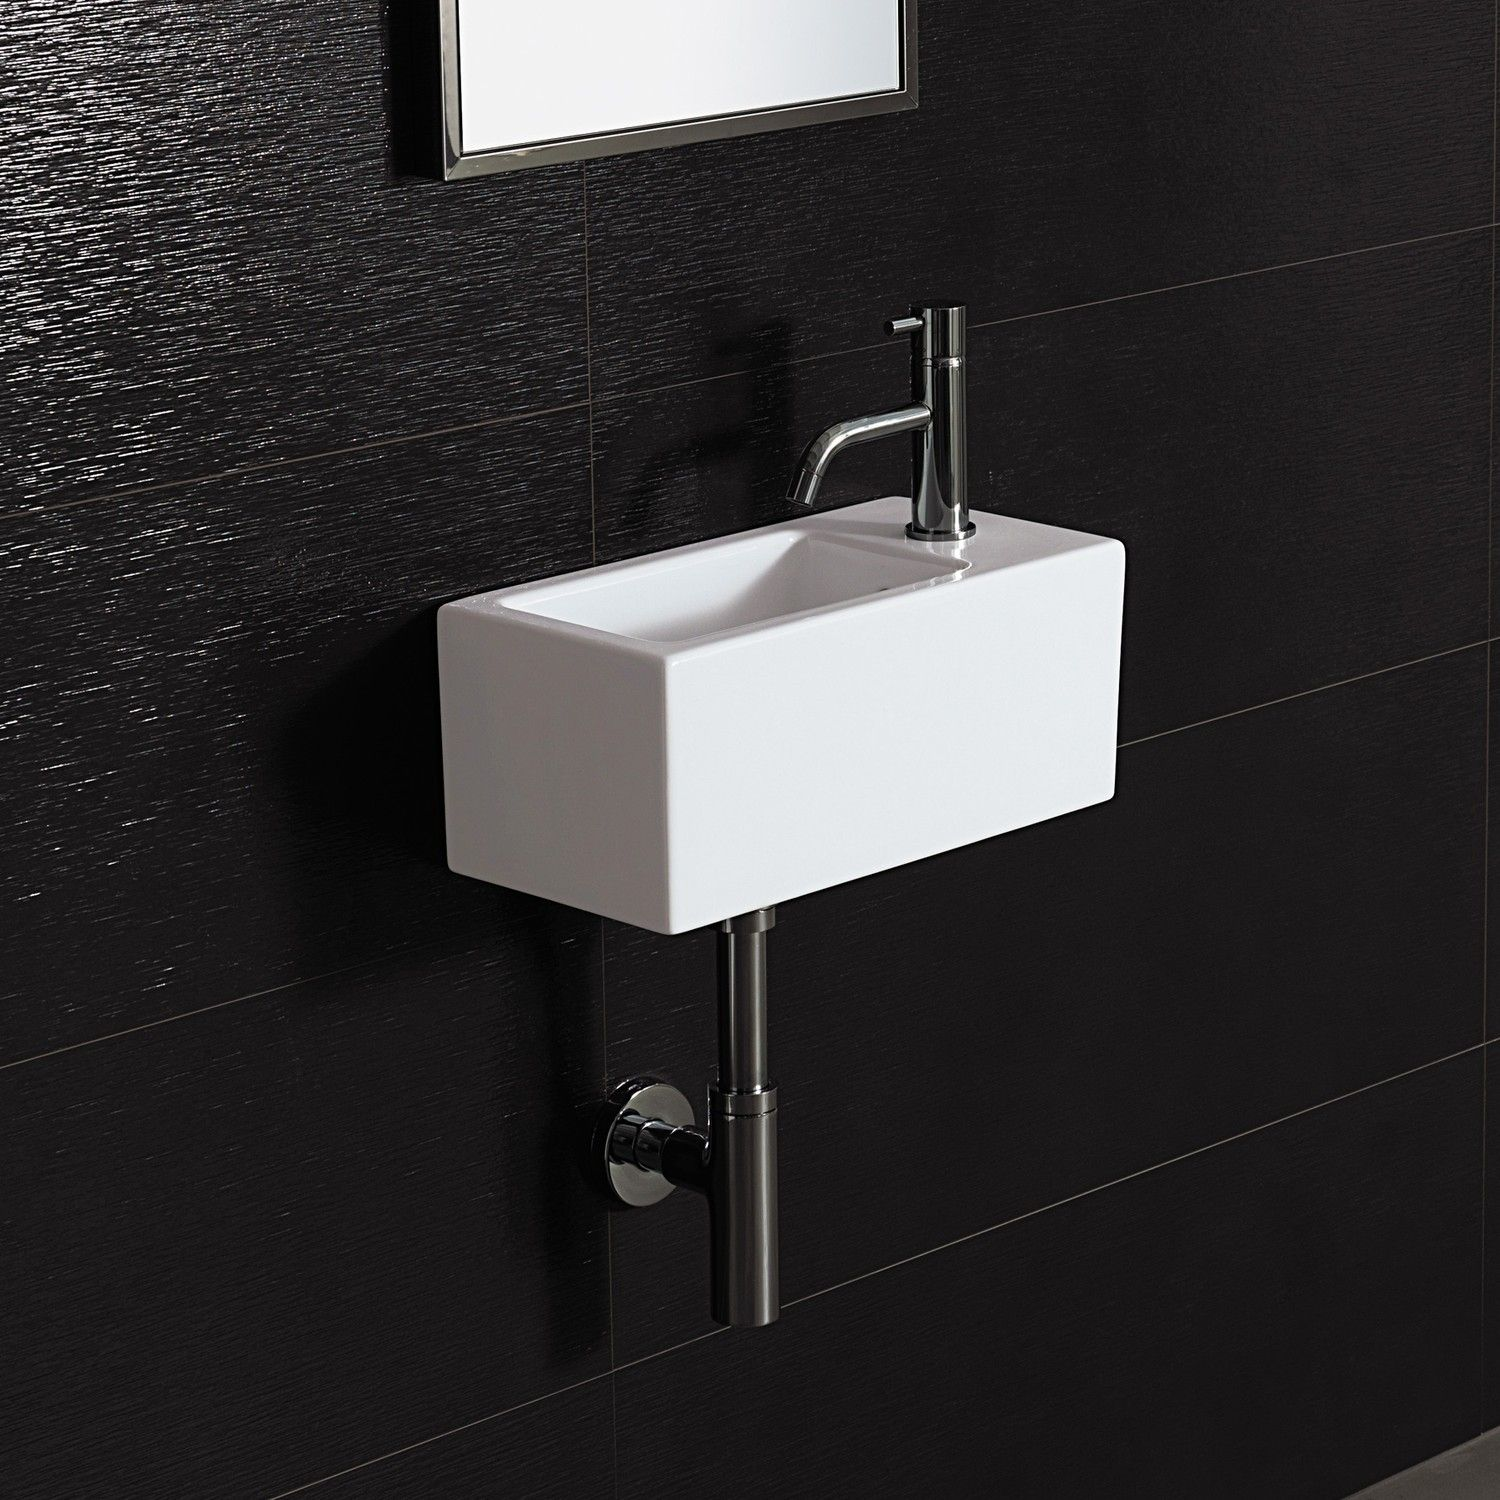 Small rectangular bathroom sink also exclusiv pinterest